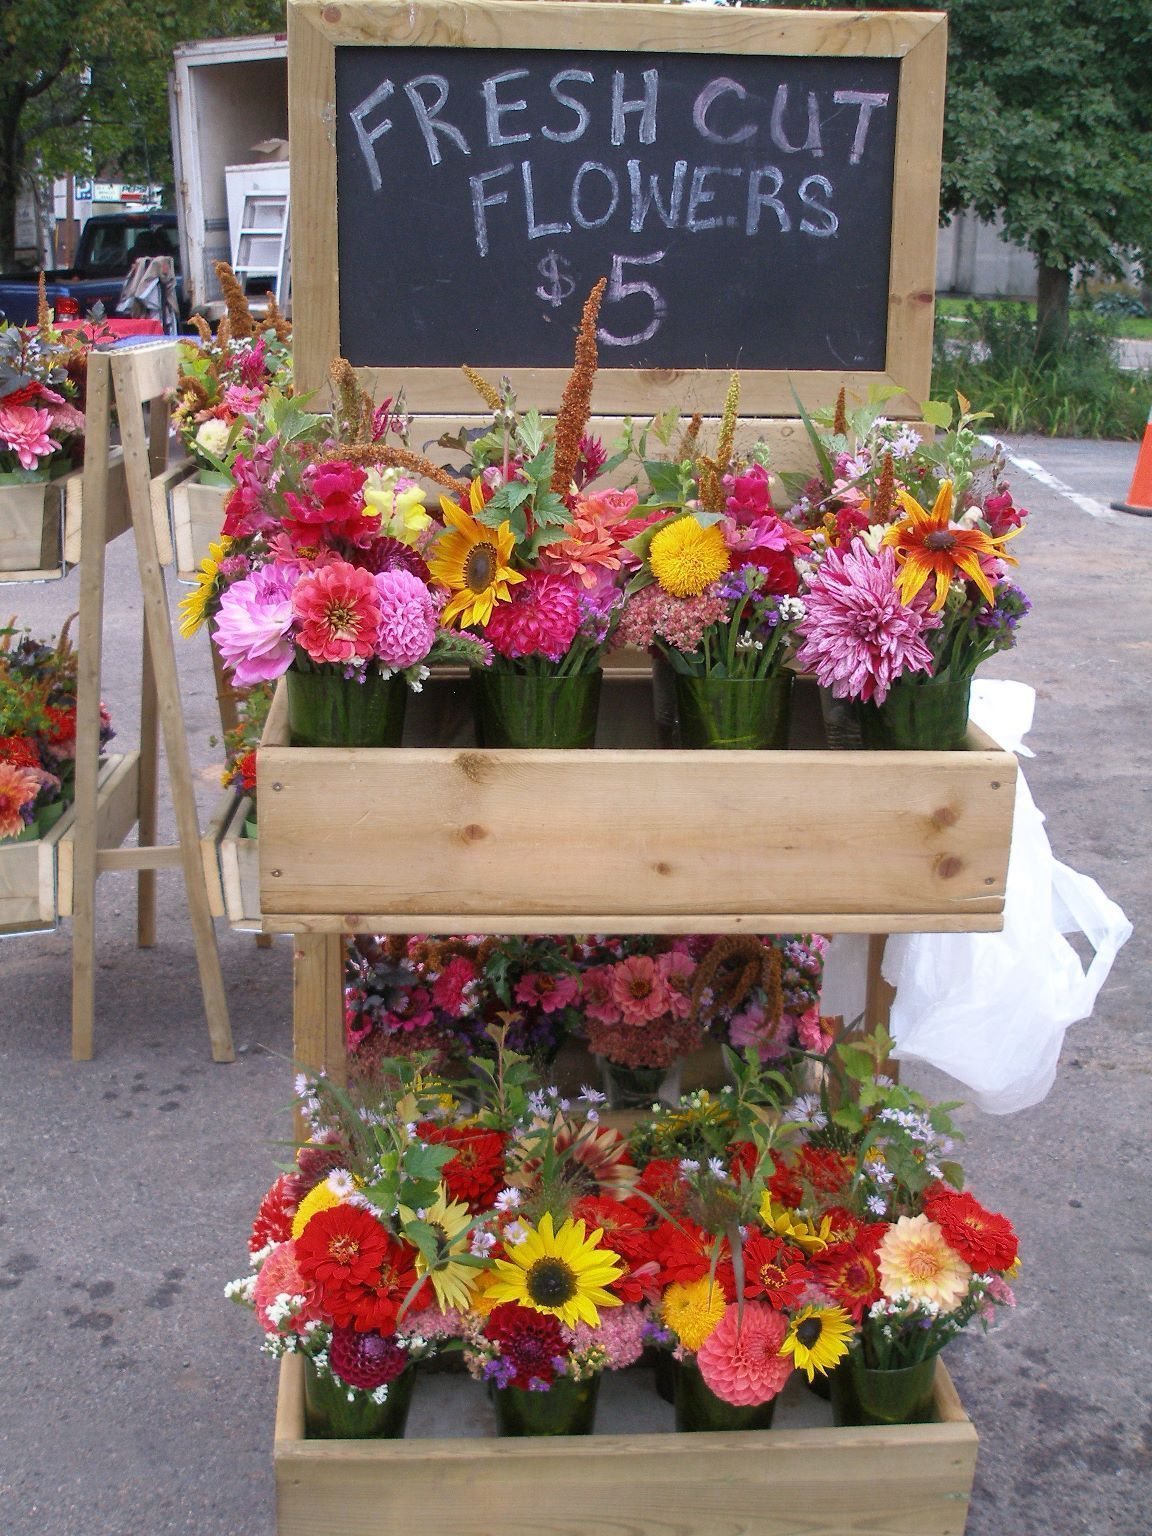 25+ Awesome Farm Stand Ideas Flower truck, Flower stands